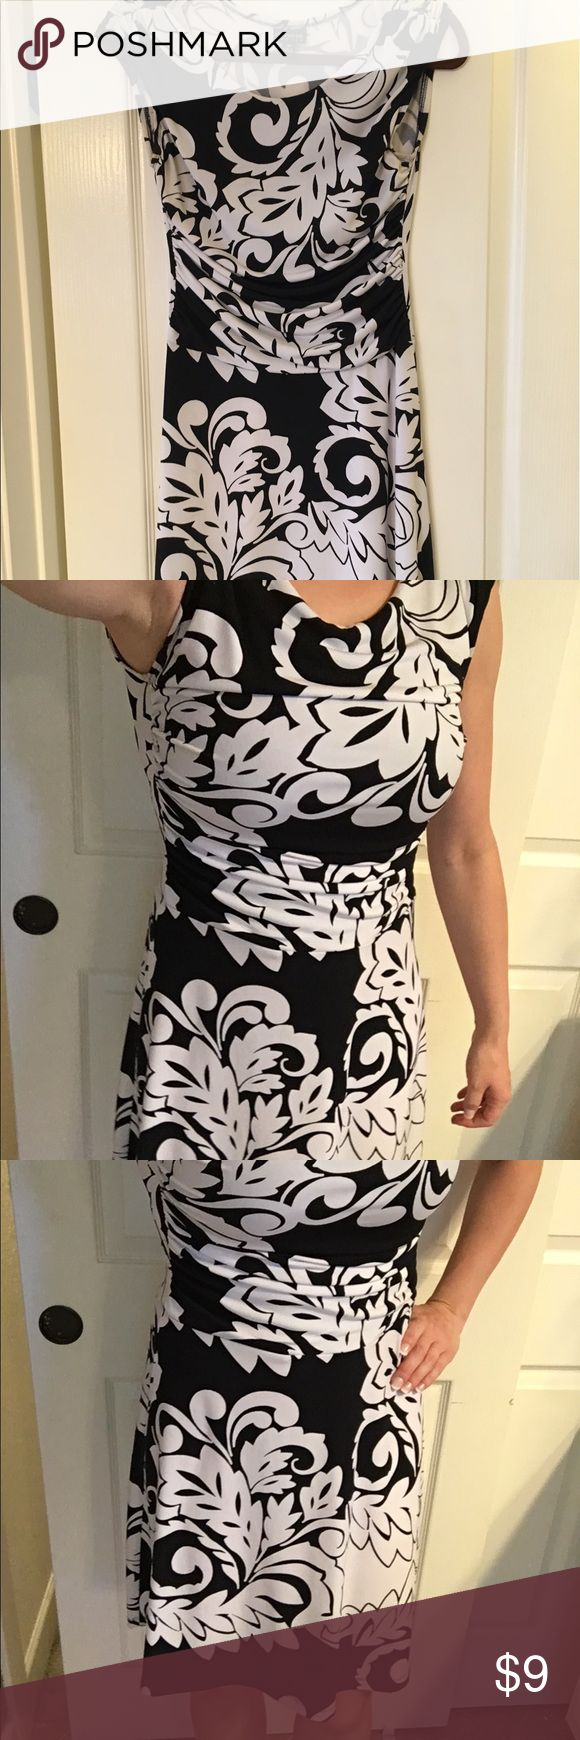 Black and white dress See last photo- very light yellowing under arm. Size is petite. Dresses